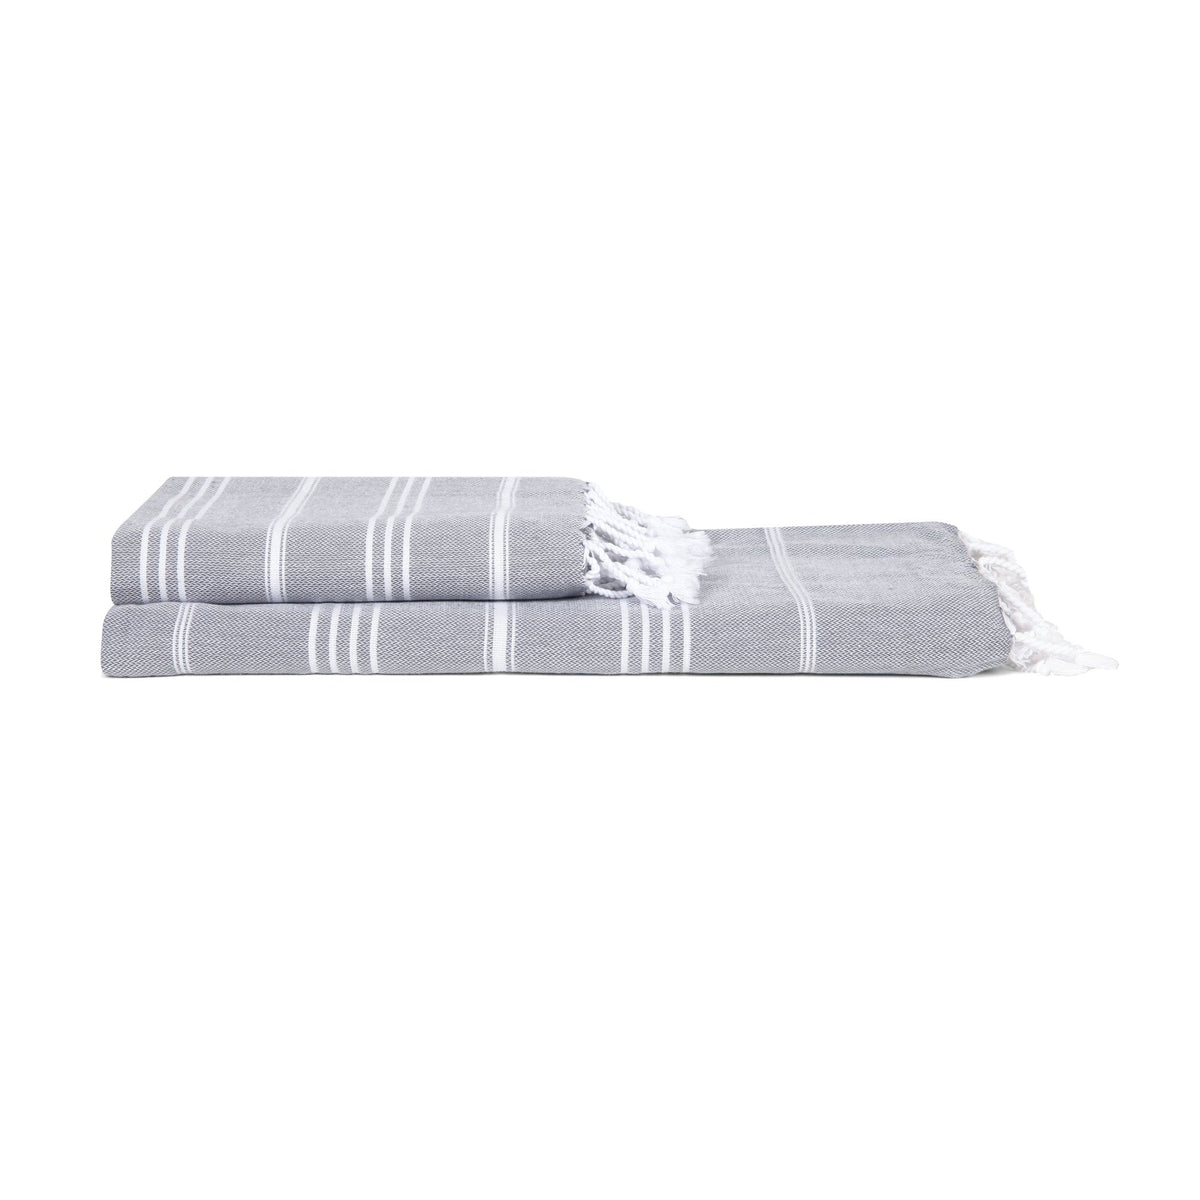 Bodrum Turkish Towel Set